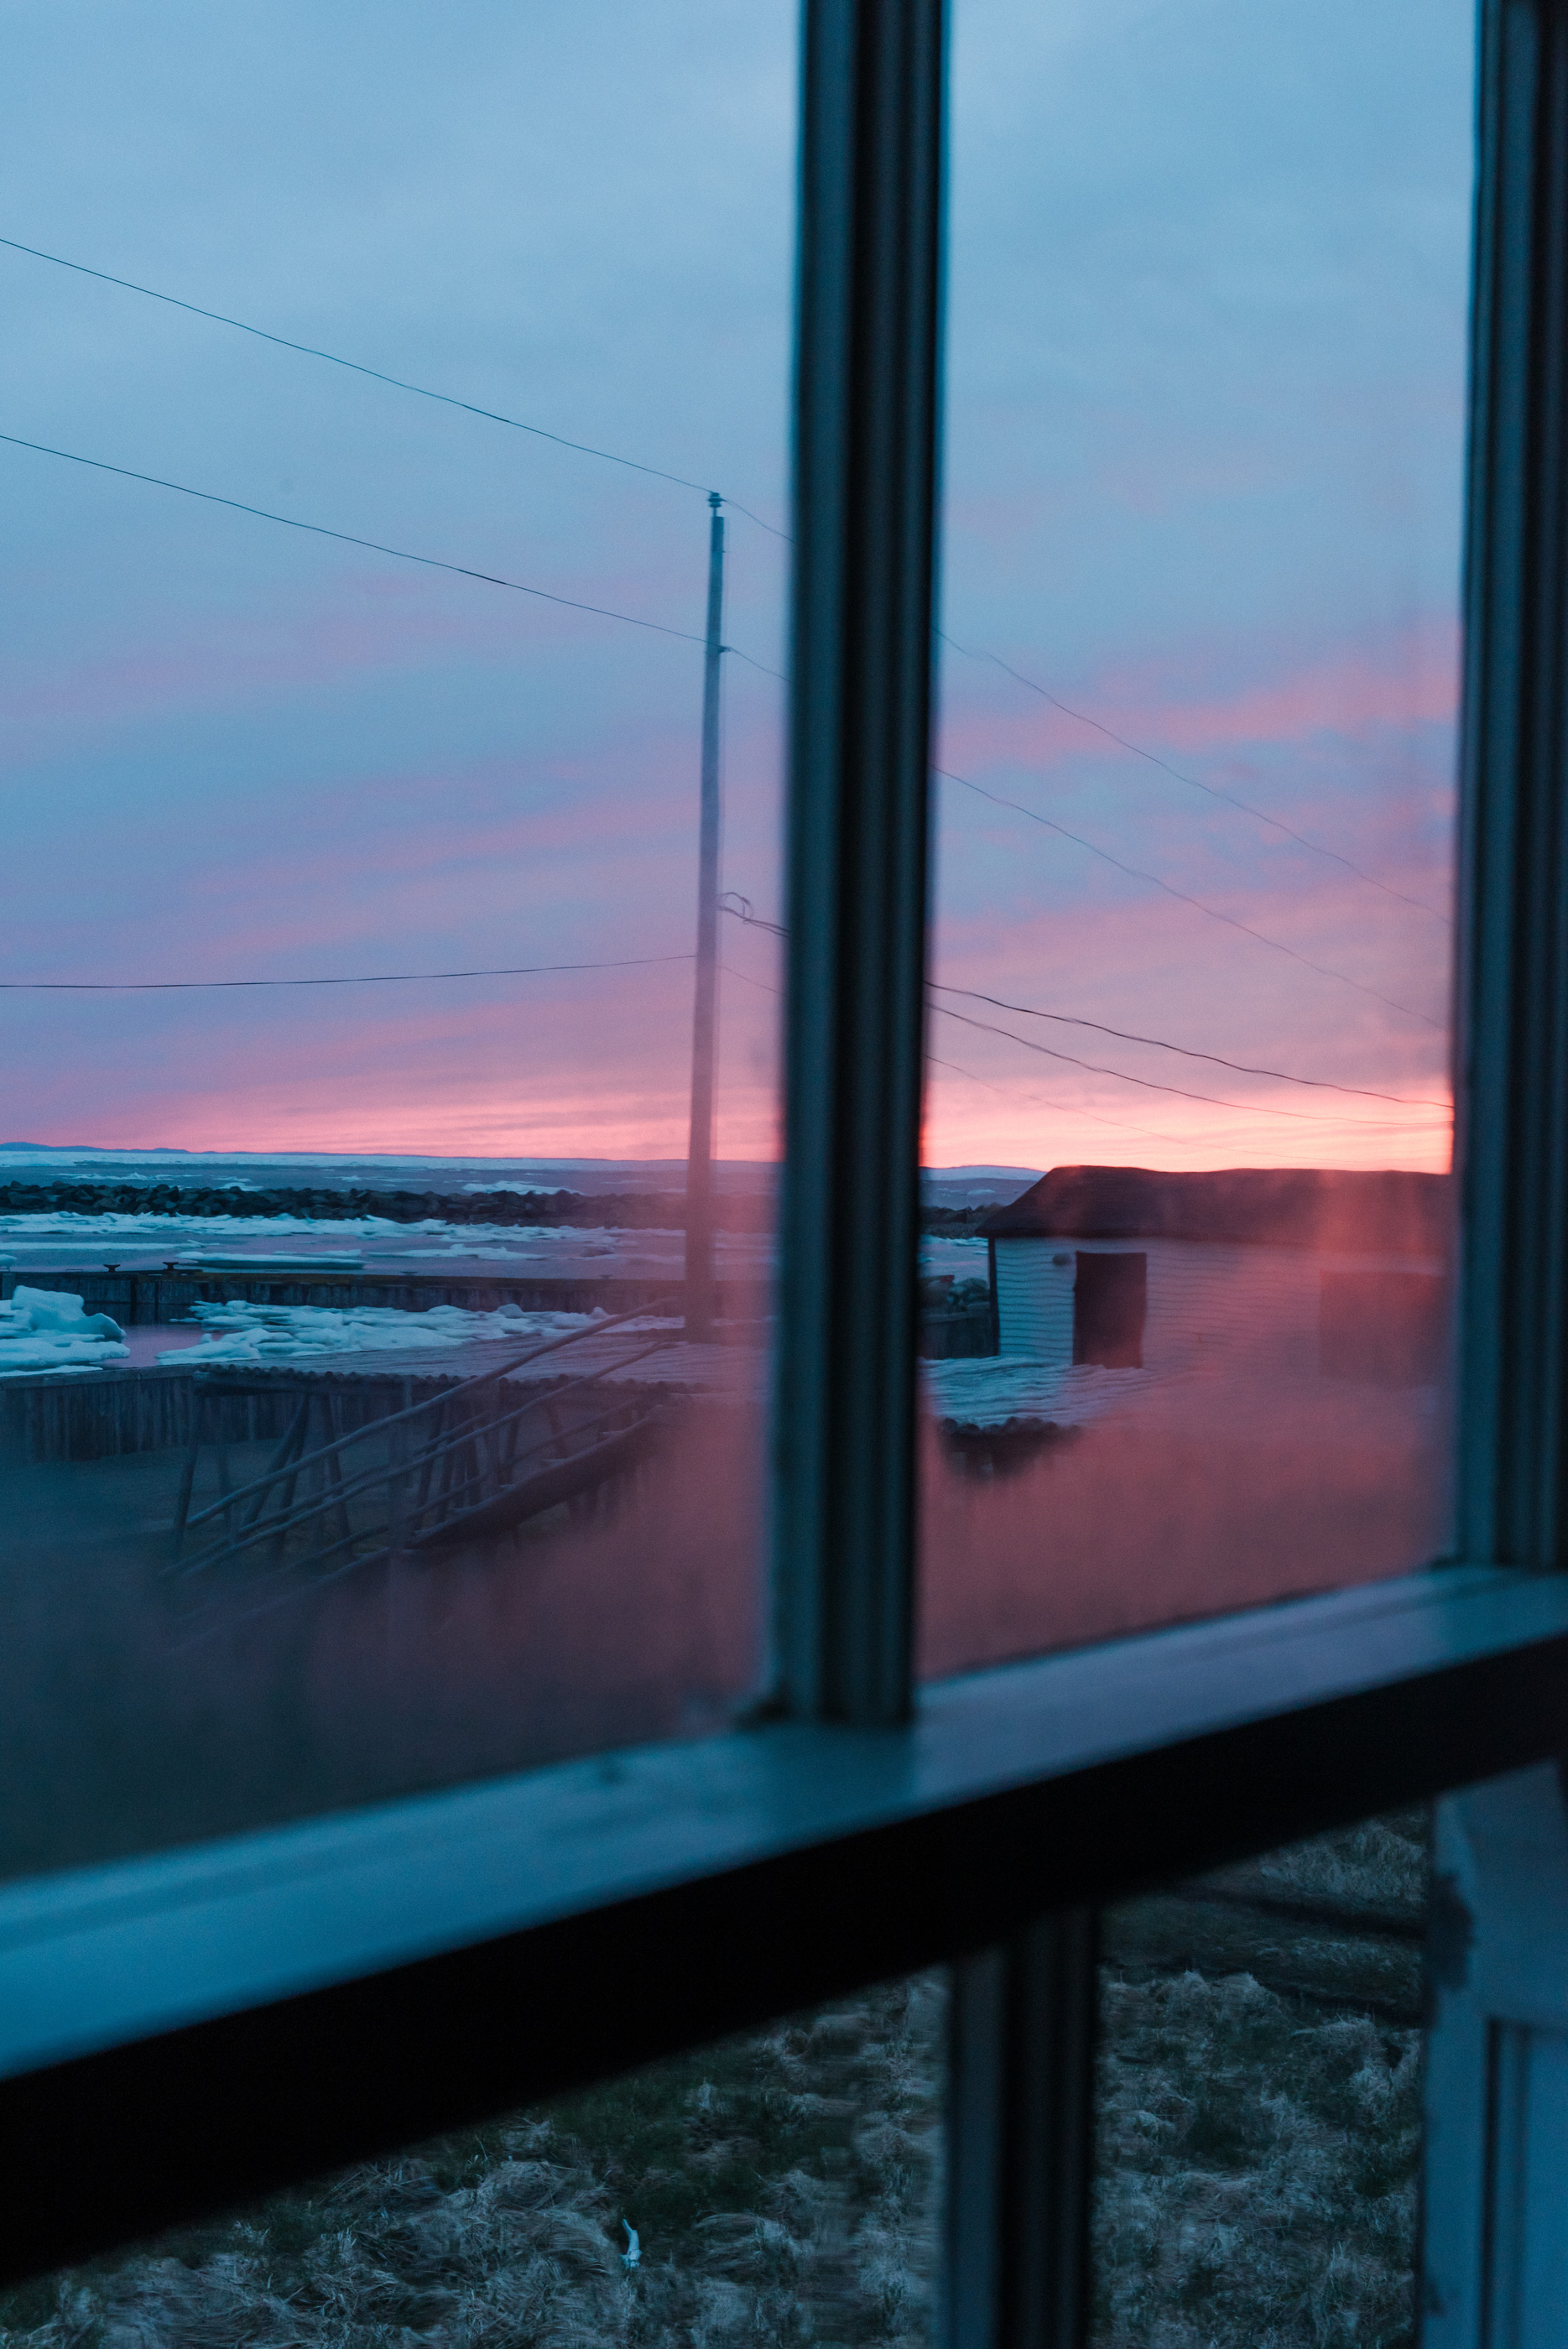 dusk-through-window-1.jpg